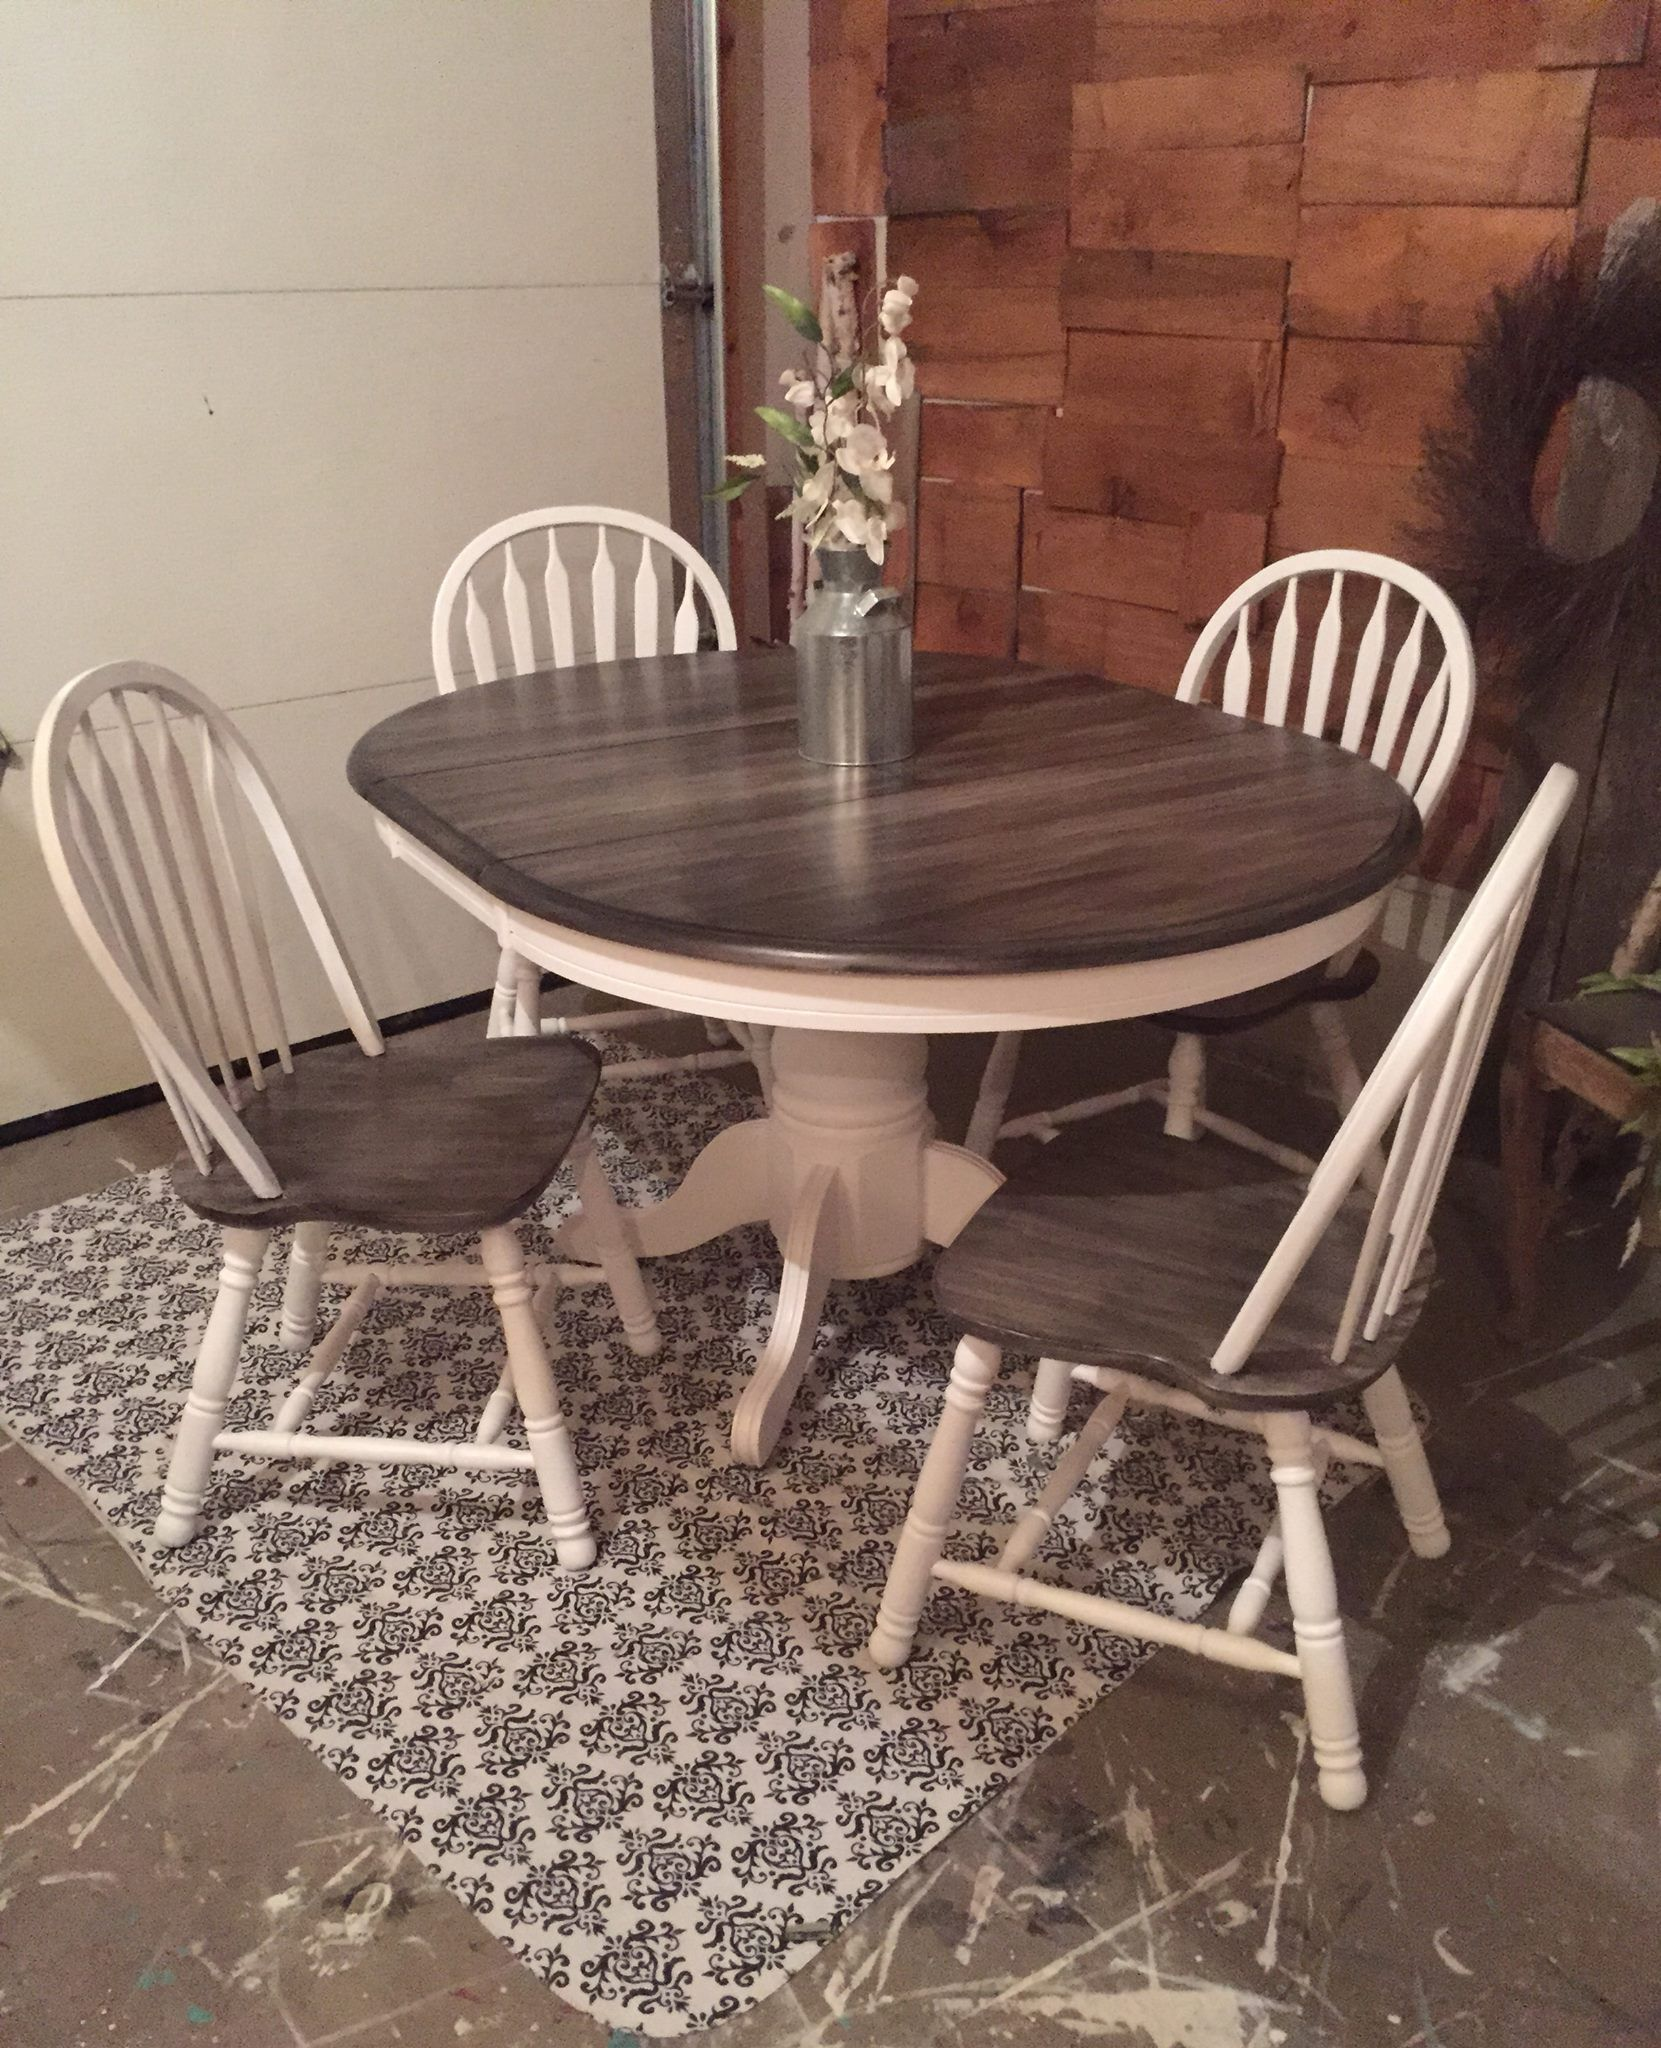 grey kitchen table and chairs swing chair garden ireland from simple oak to a decorative rustic